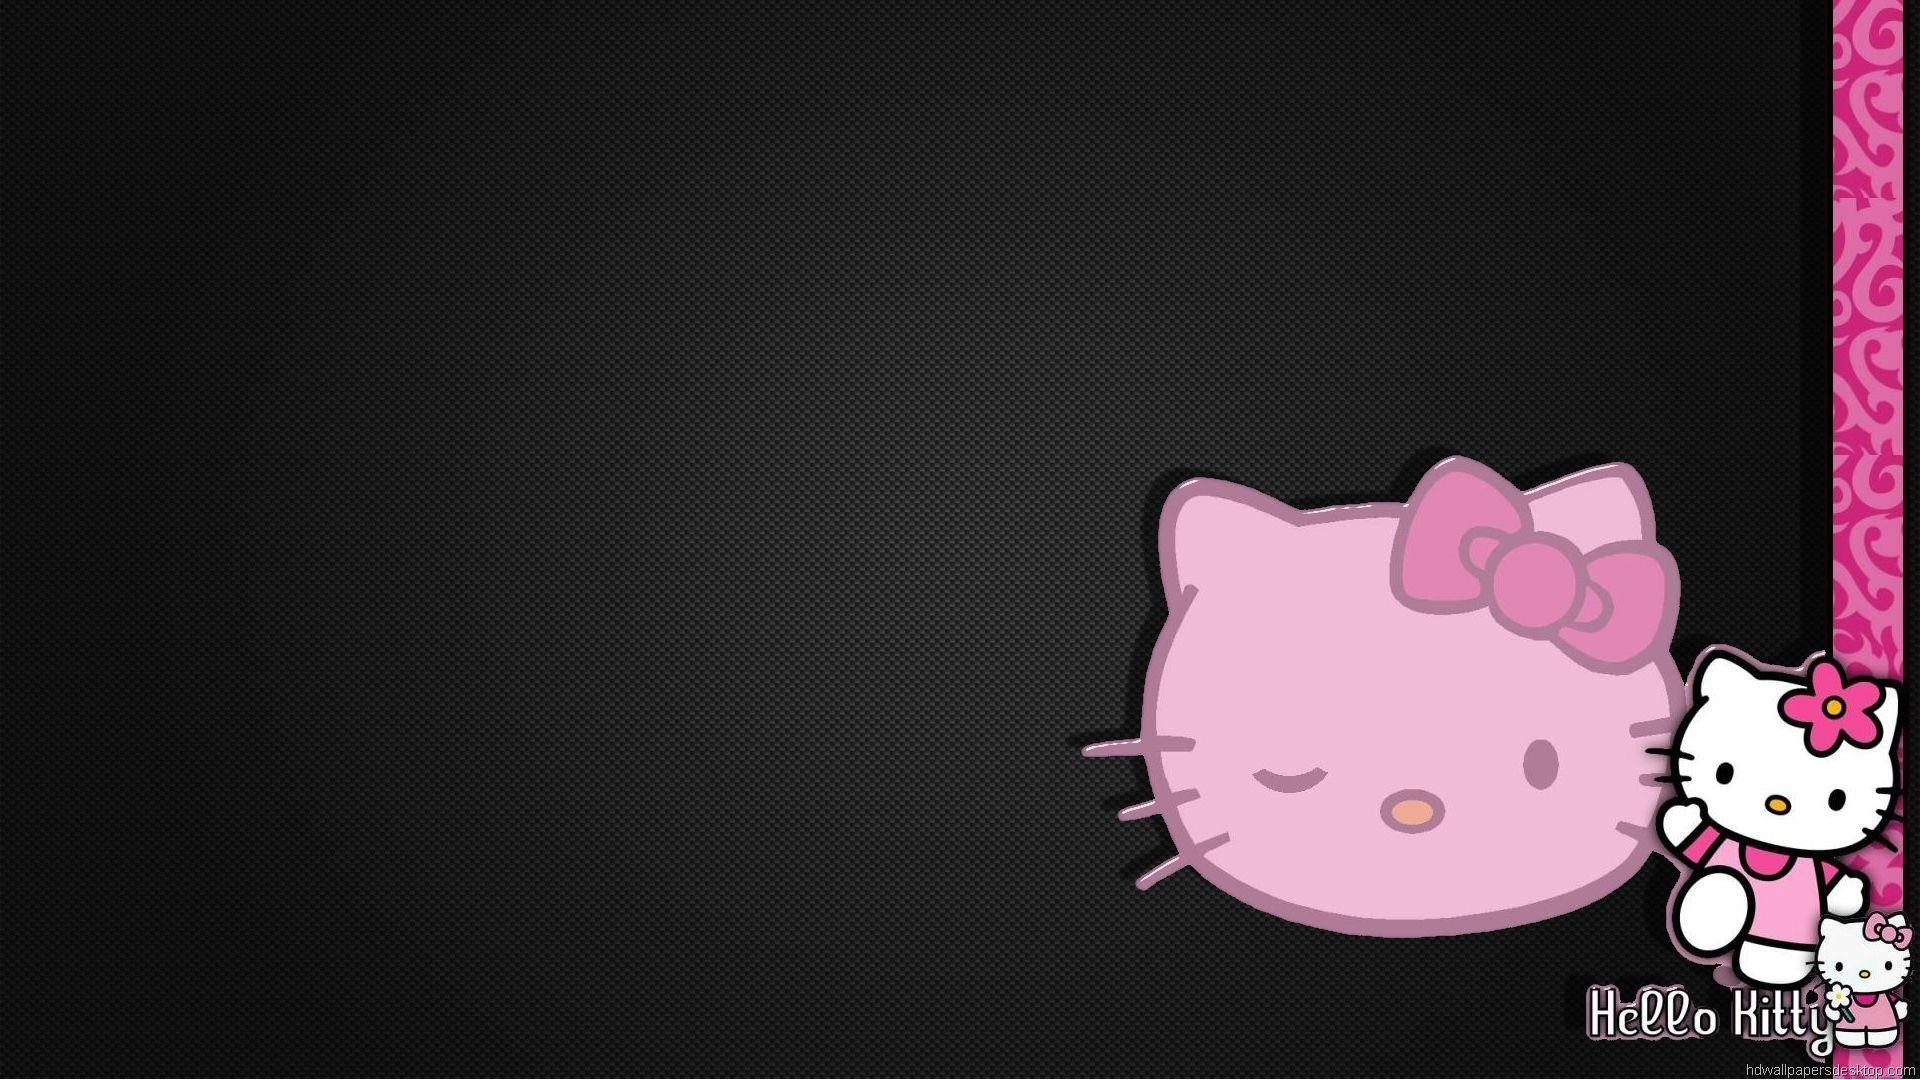 1920x1080 Hello Kitty Nerd Wallpaper 38845 HD Wallpapers | fullhdwalls.